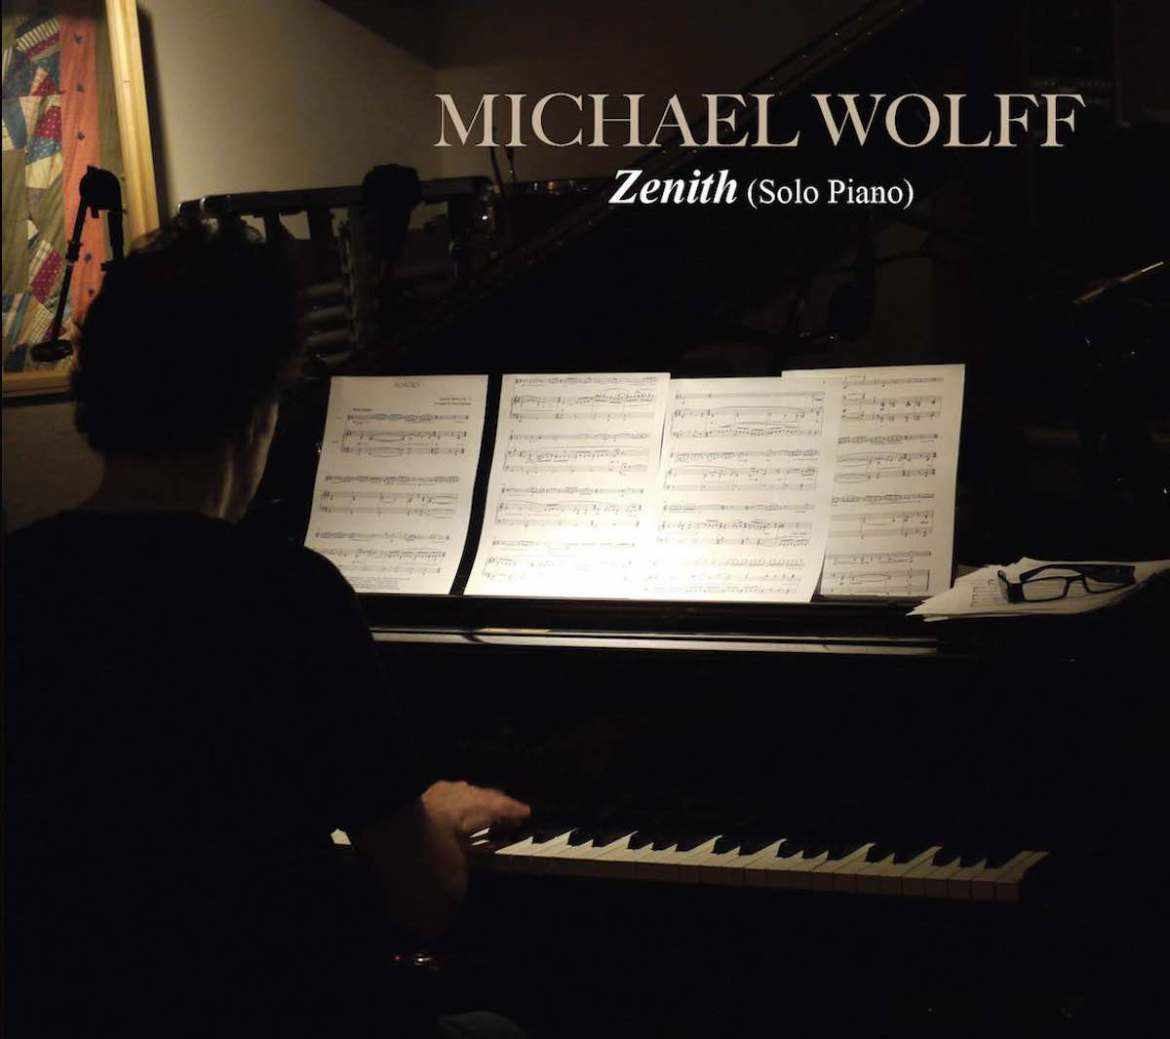 REVIEW: Michael Wolff - Zenith